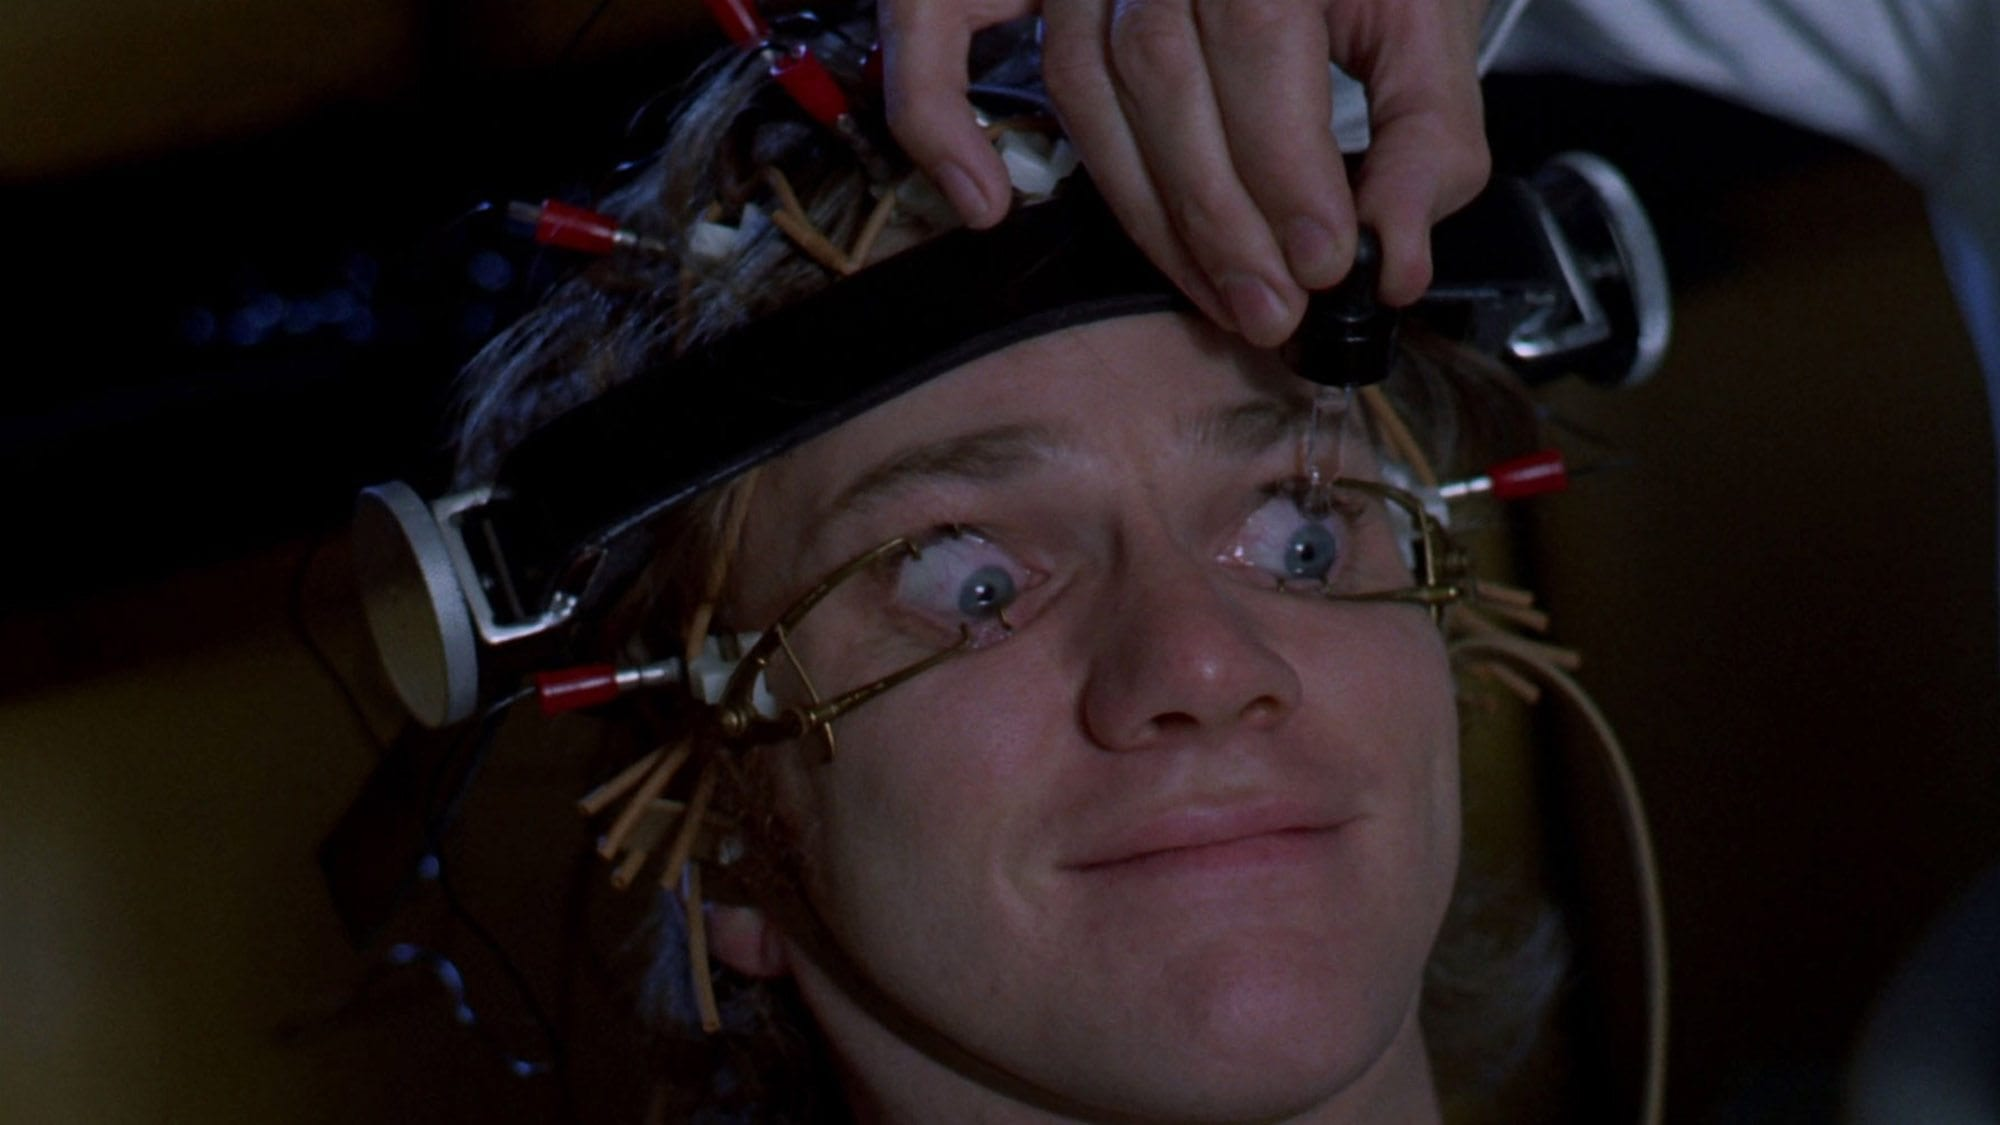 Amazon Prime movies that you might have missed: From Stanley Kubrick's 'A Clockwork Orange', one of the most disturbing films of all time, to 'Falling Down', a sitting exploration of America's pent-up social anxieties.